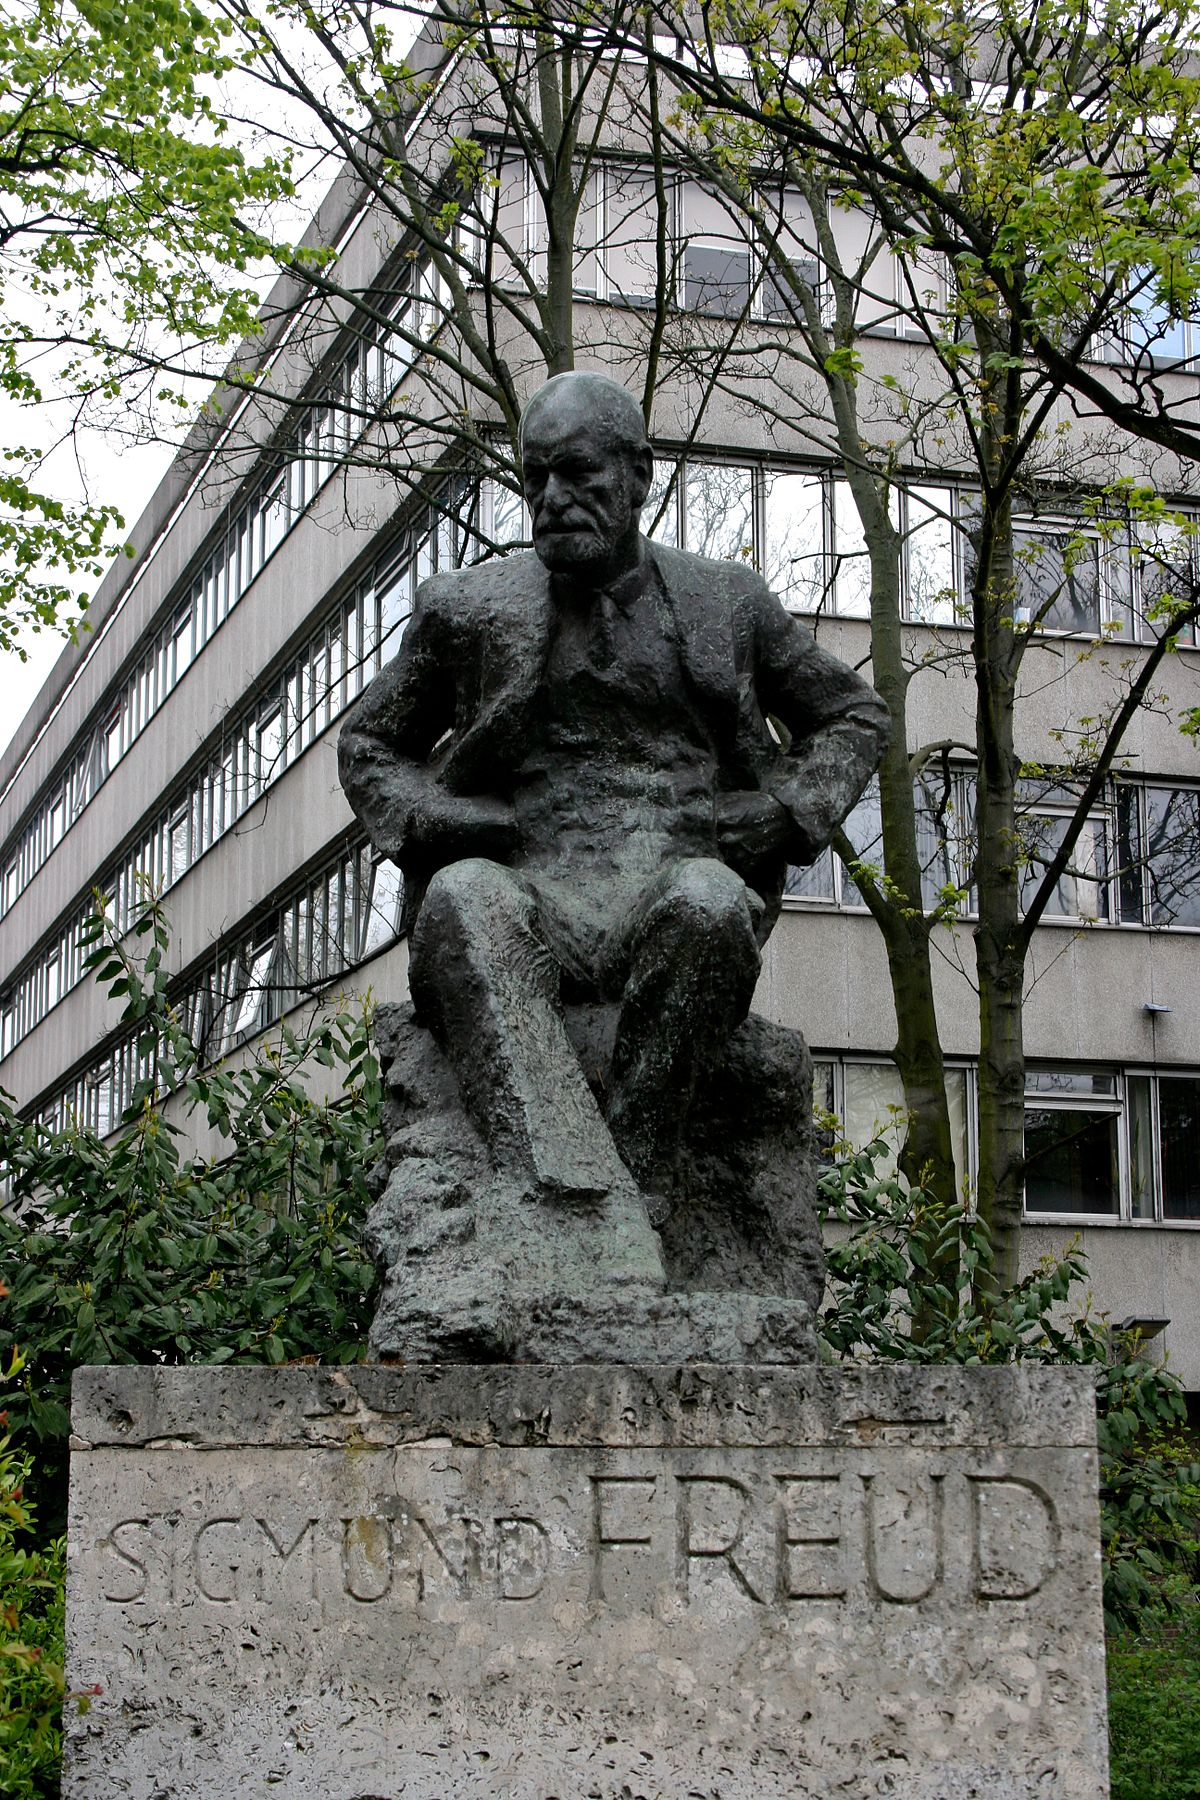 sigmund freud essays statue of sigmund freud hampstead writings on  statue of sigmund freud hampstead